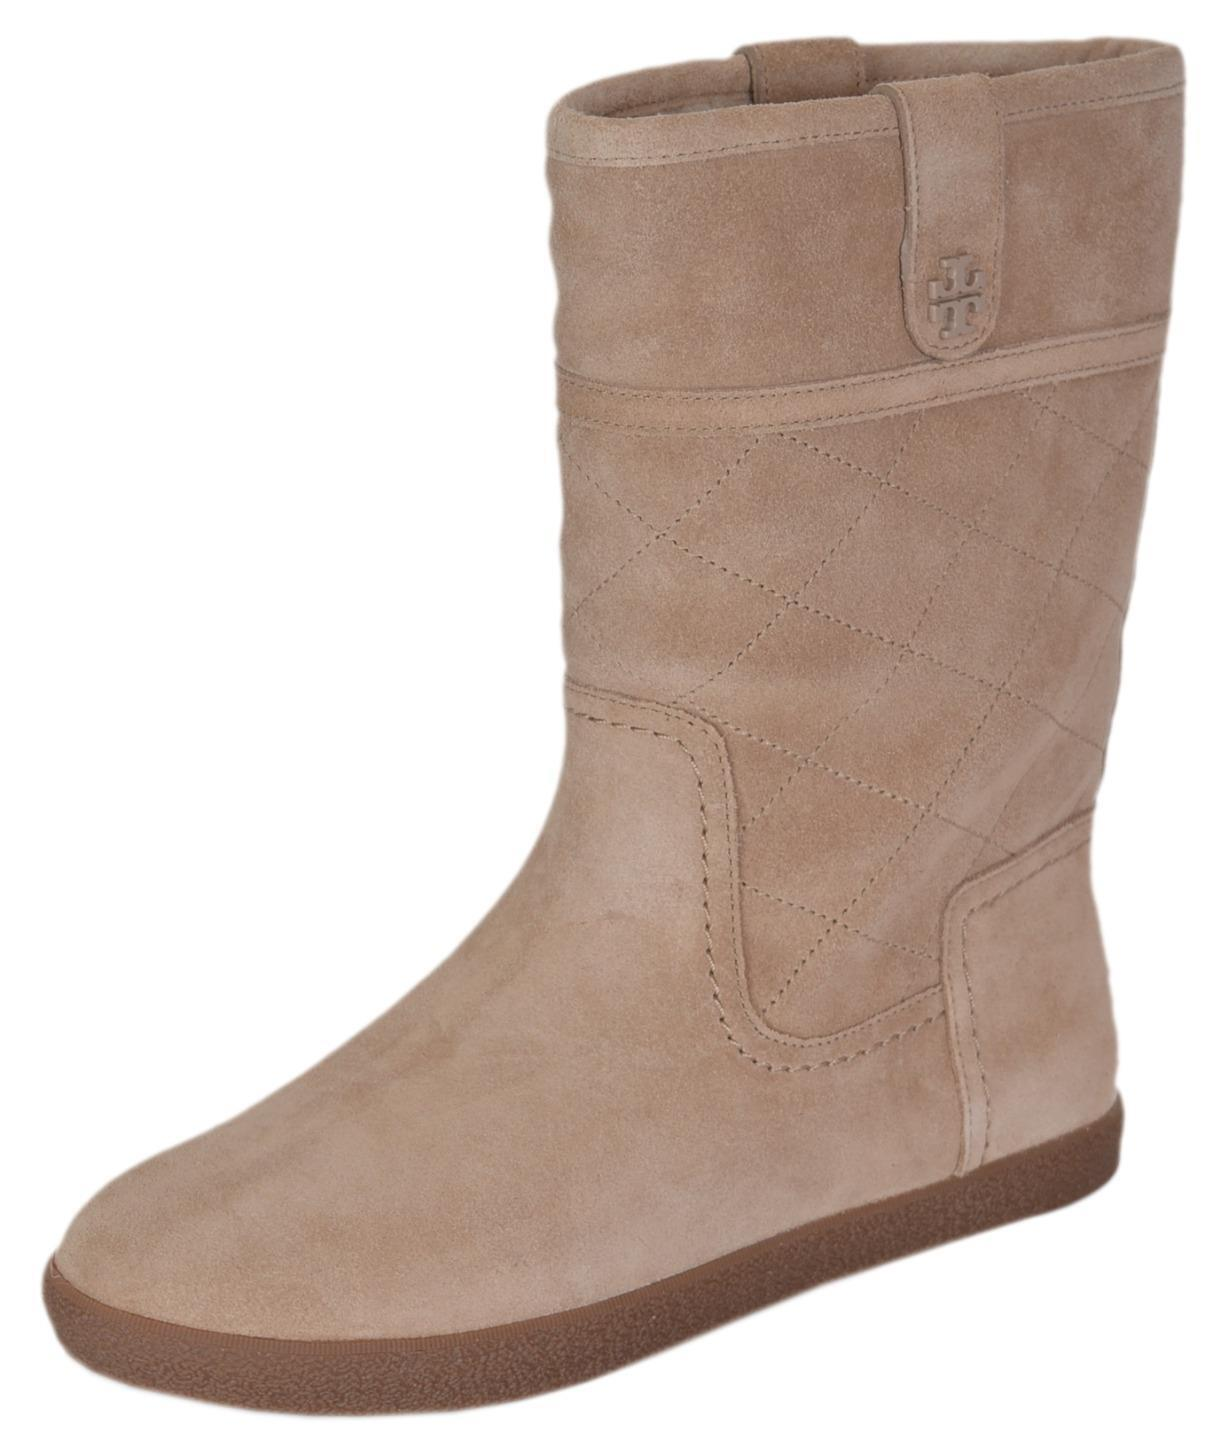 NEW Tory Burch Women's Suede Shearling Camel Mid Calf Winter Snow Boots Shoes